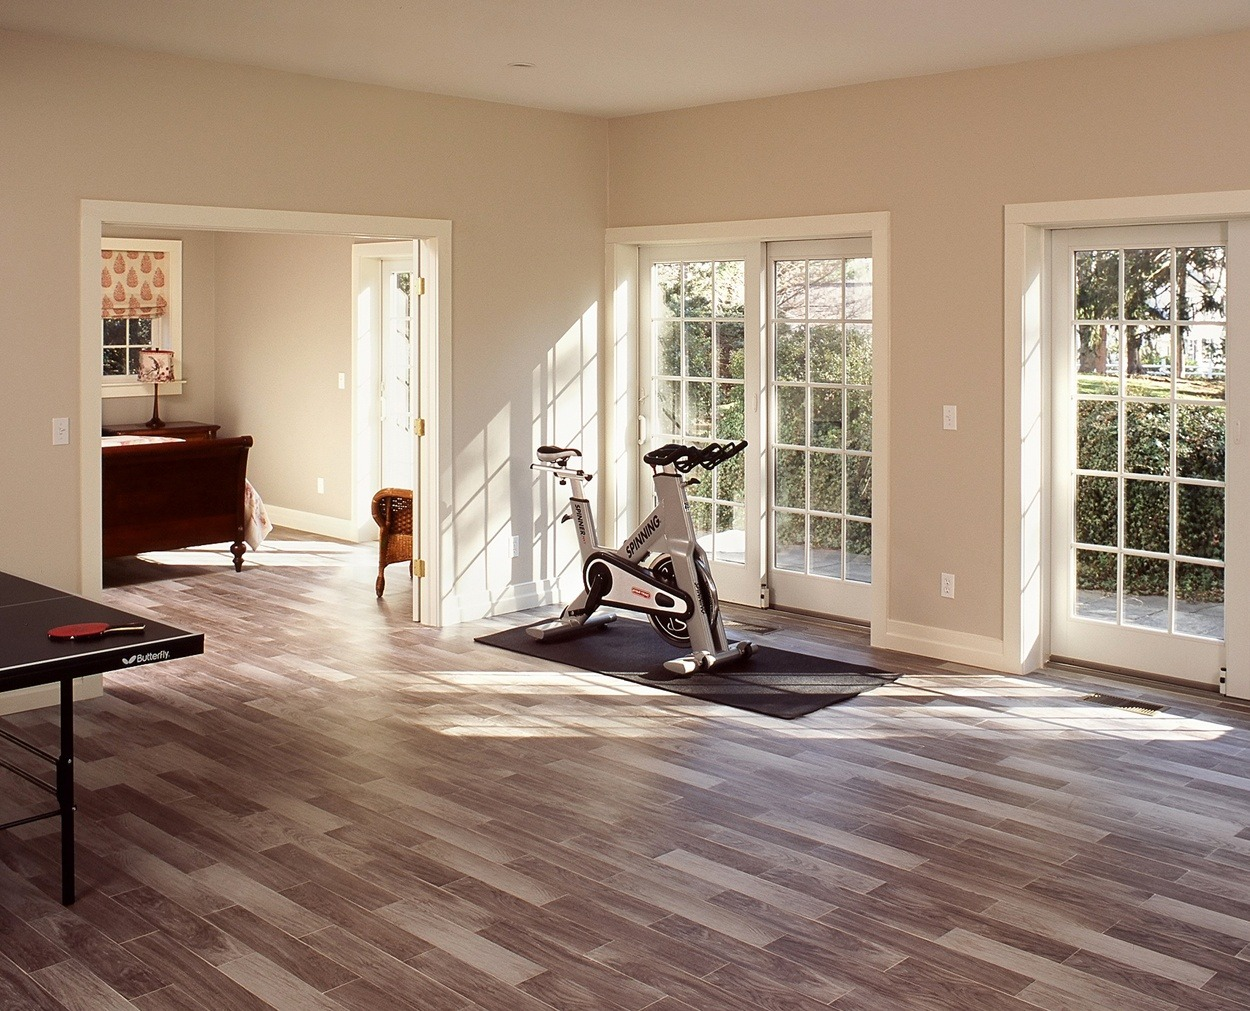 Exercise room or play area are options for this multiuse space in this New Canaan home.